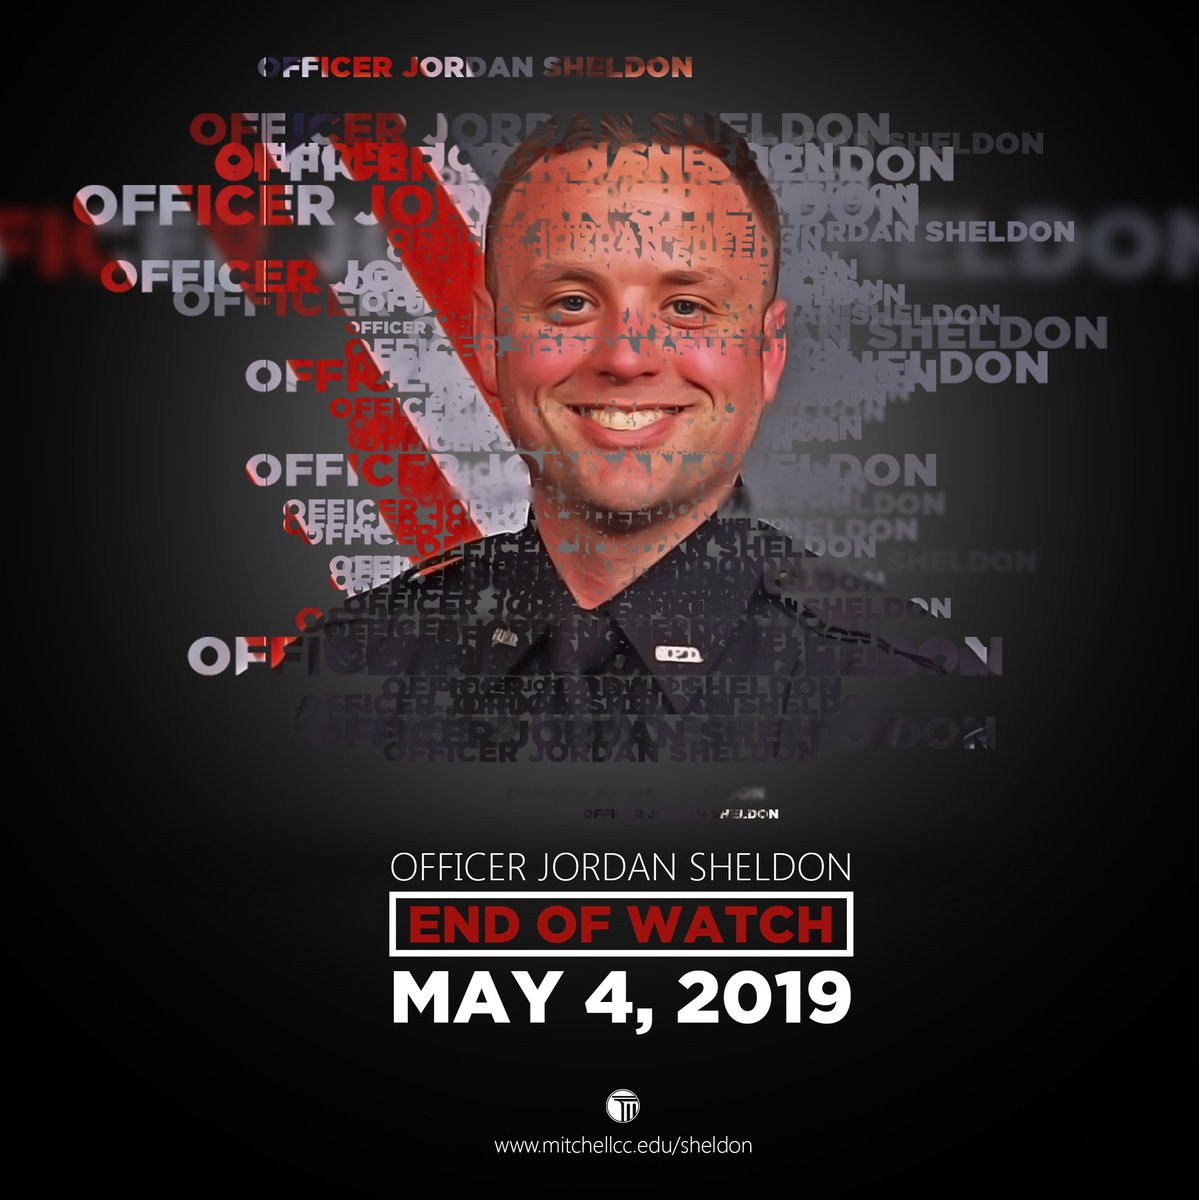 Today is Officer Sheldon's birthday.   Help us honor his memory by retweeting this post.  #HappyBirthday   Make a contribution to the Officer Jordan Sheldon Scholarship using the link below, and together, let's lift up the life and memory of this hero.  ➡️